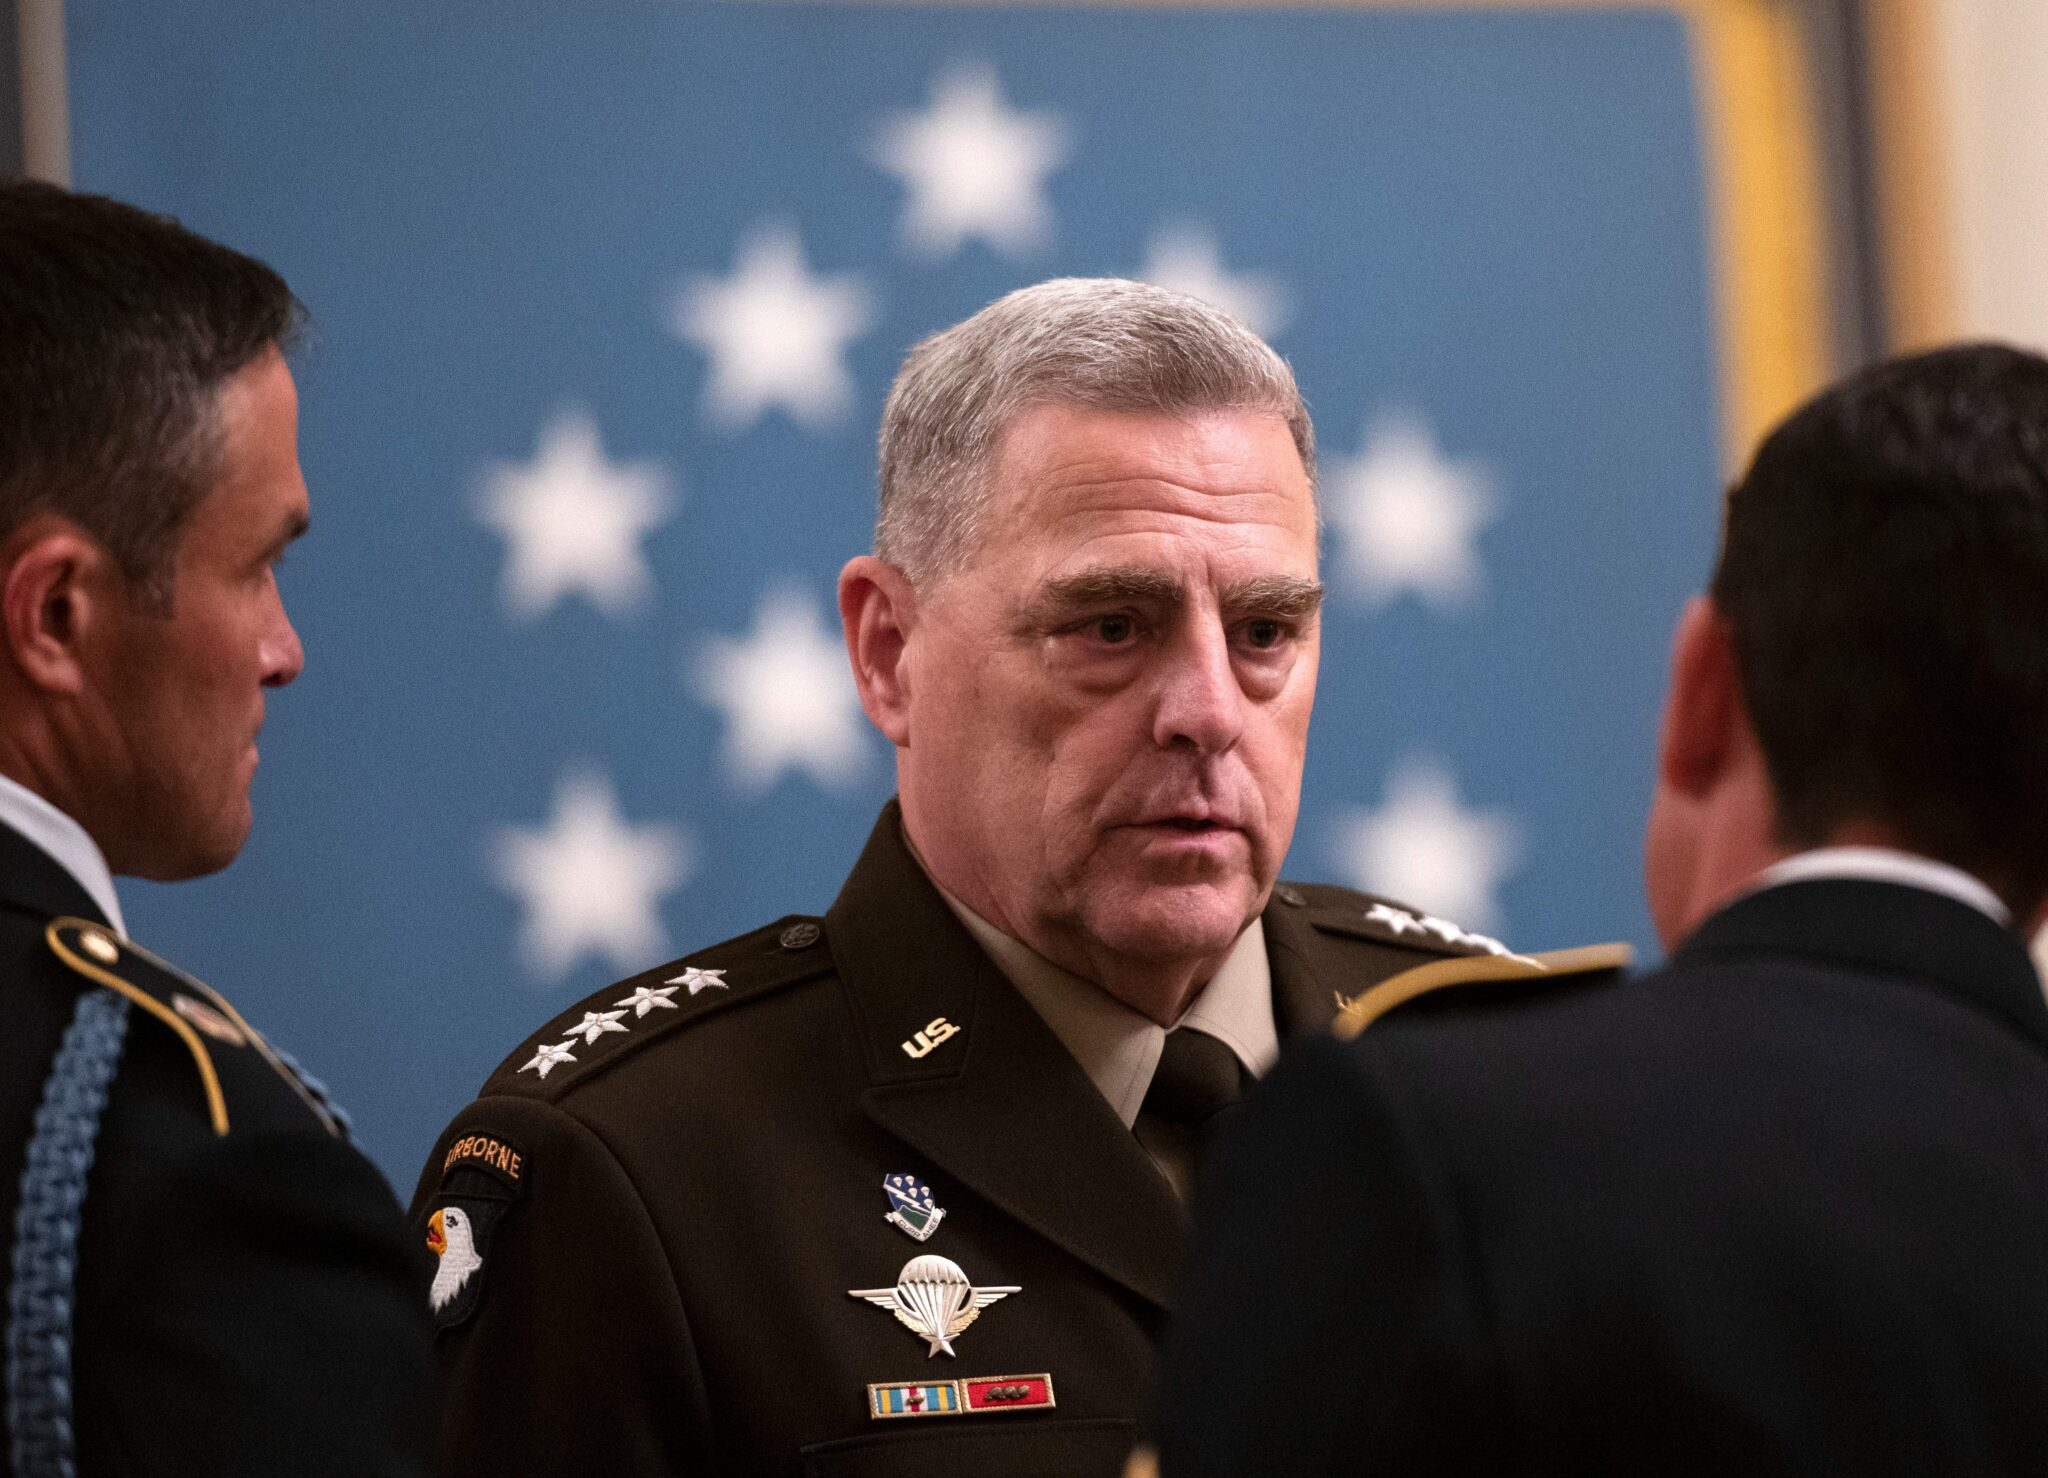 Joint Chiefs Generals Reportedly Reassured Network Heads Military Would Not Interfere in Election Results